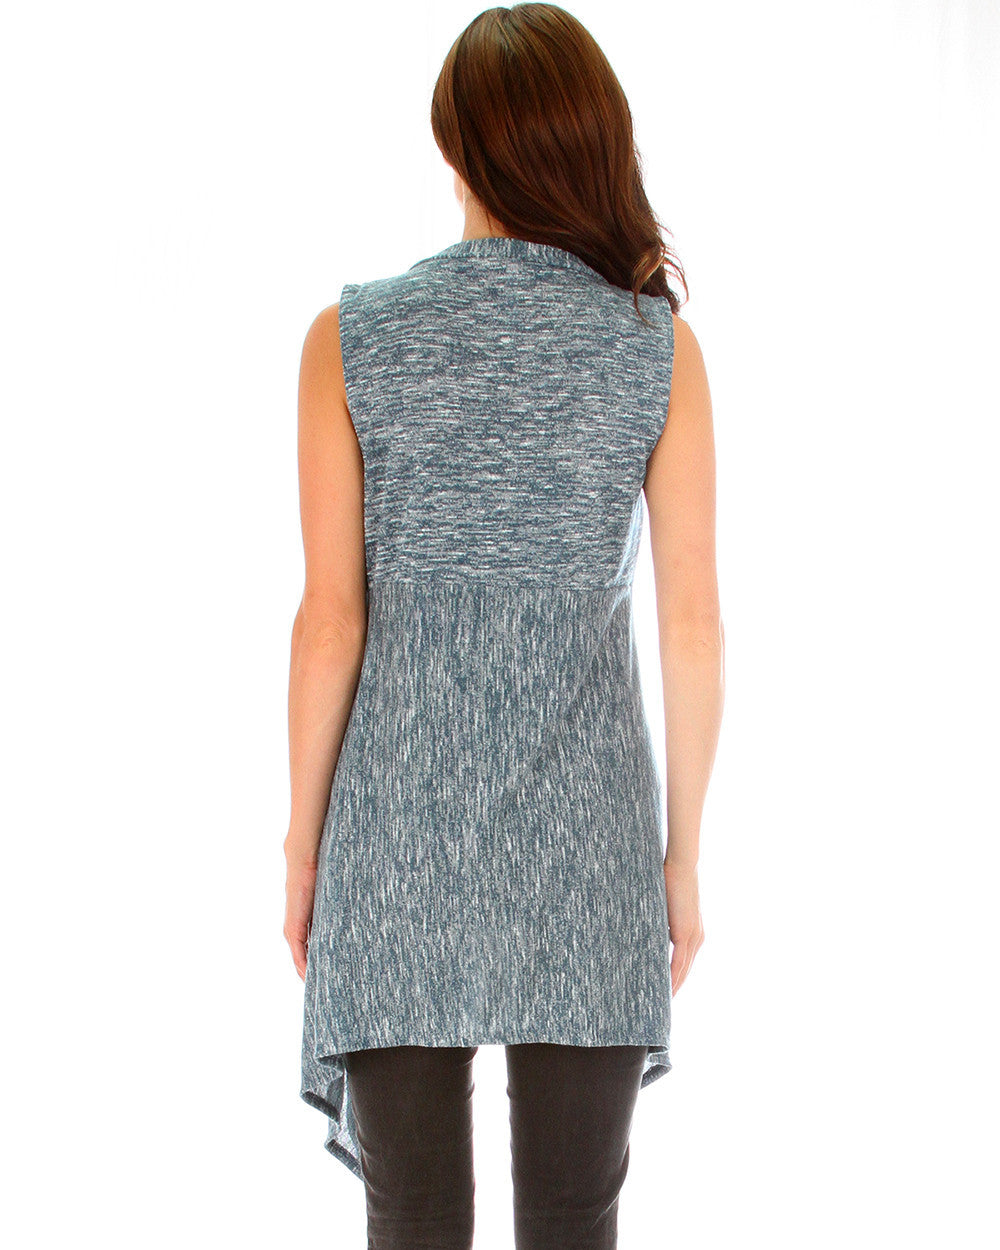 Body Slimming 2-Tone Cardigan In Teal